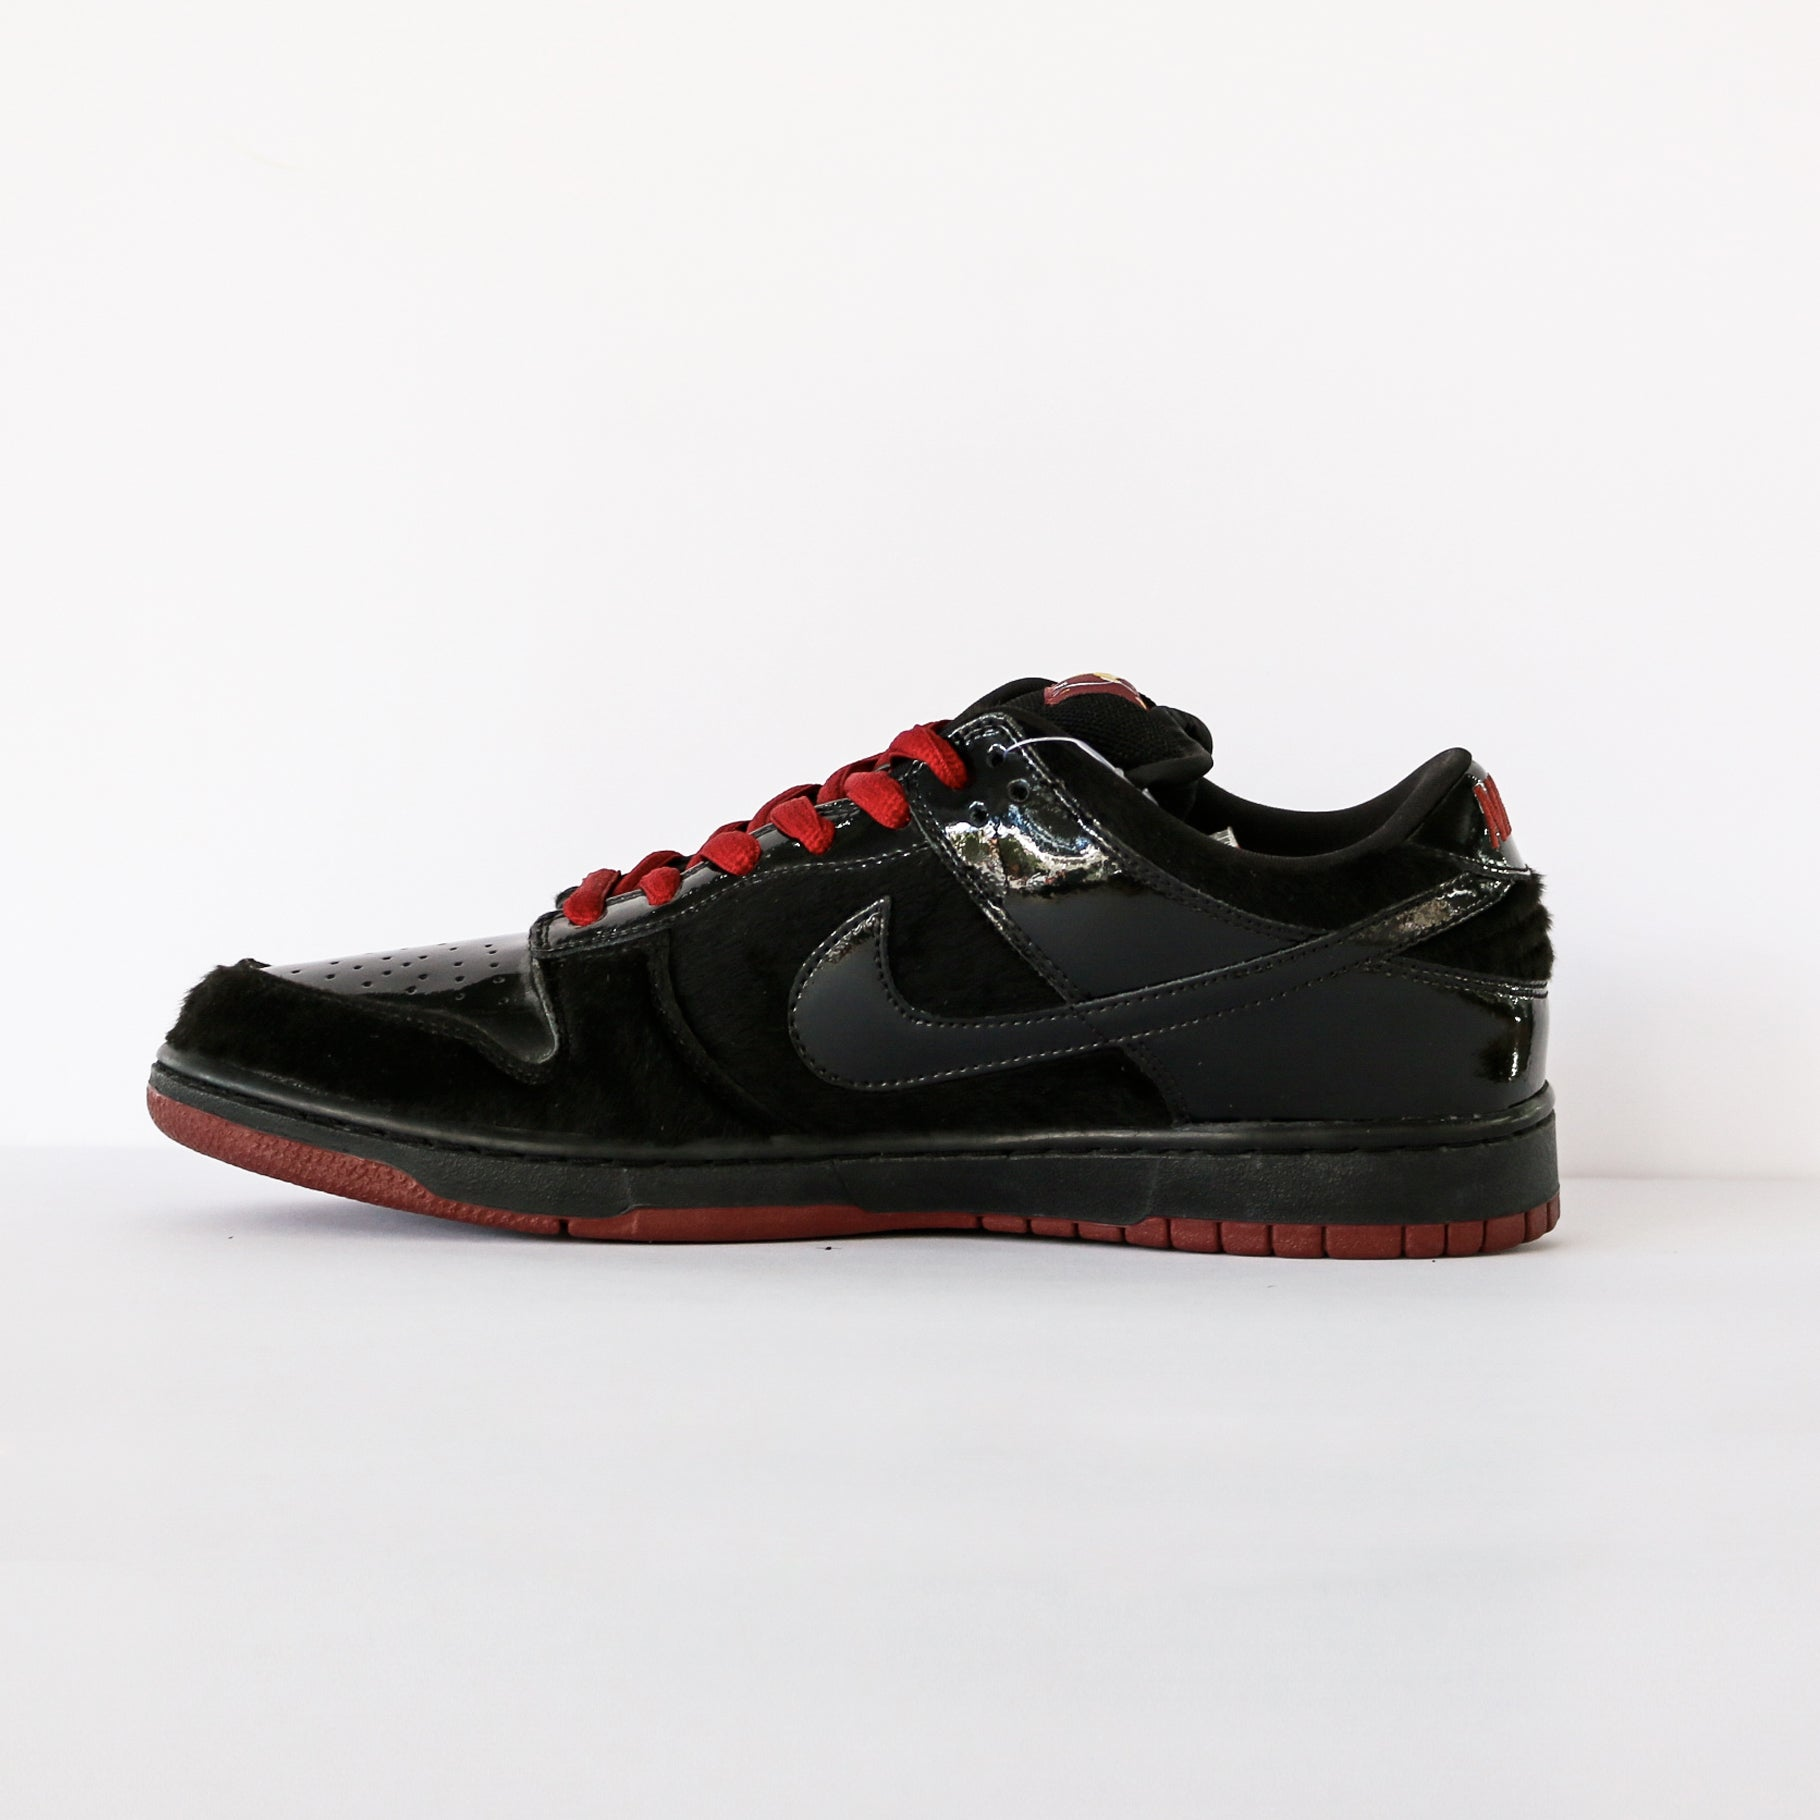 SB Dunk Low Premium 'Mafia'